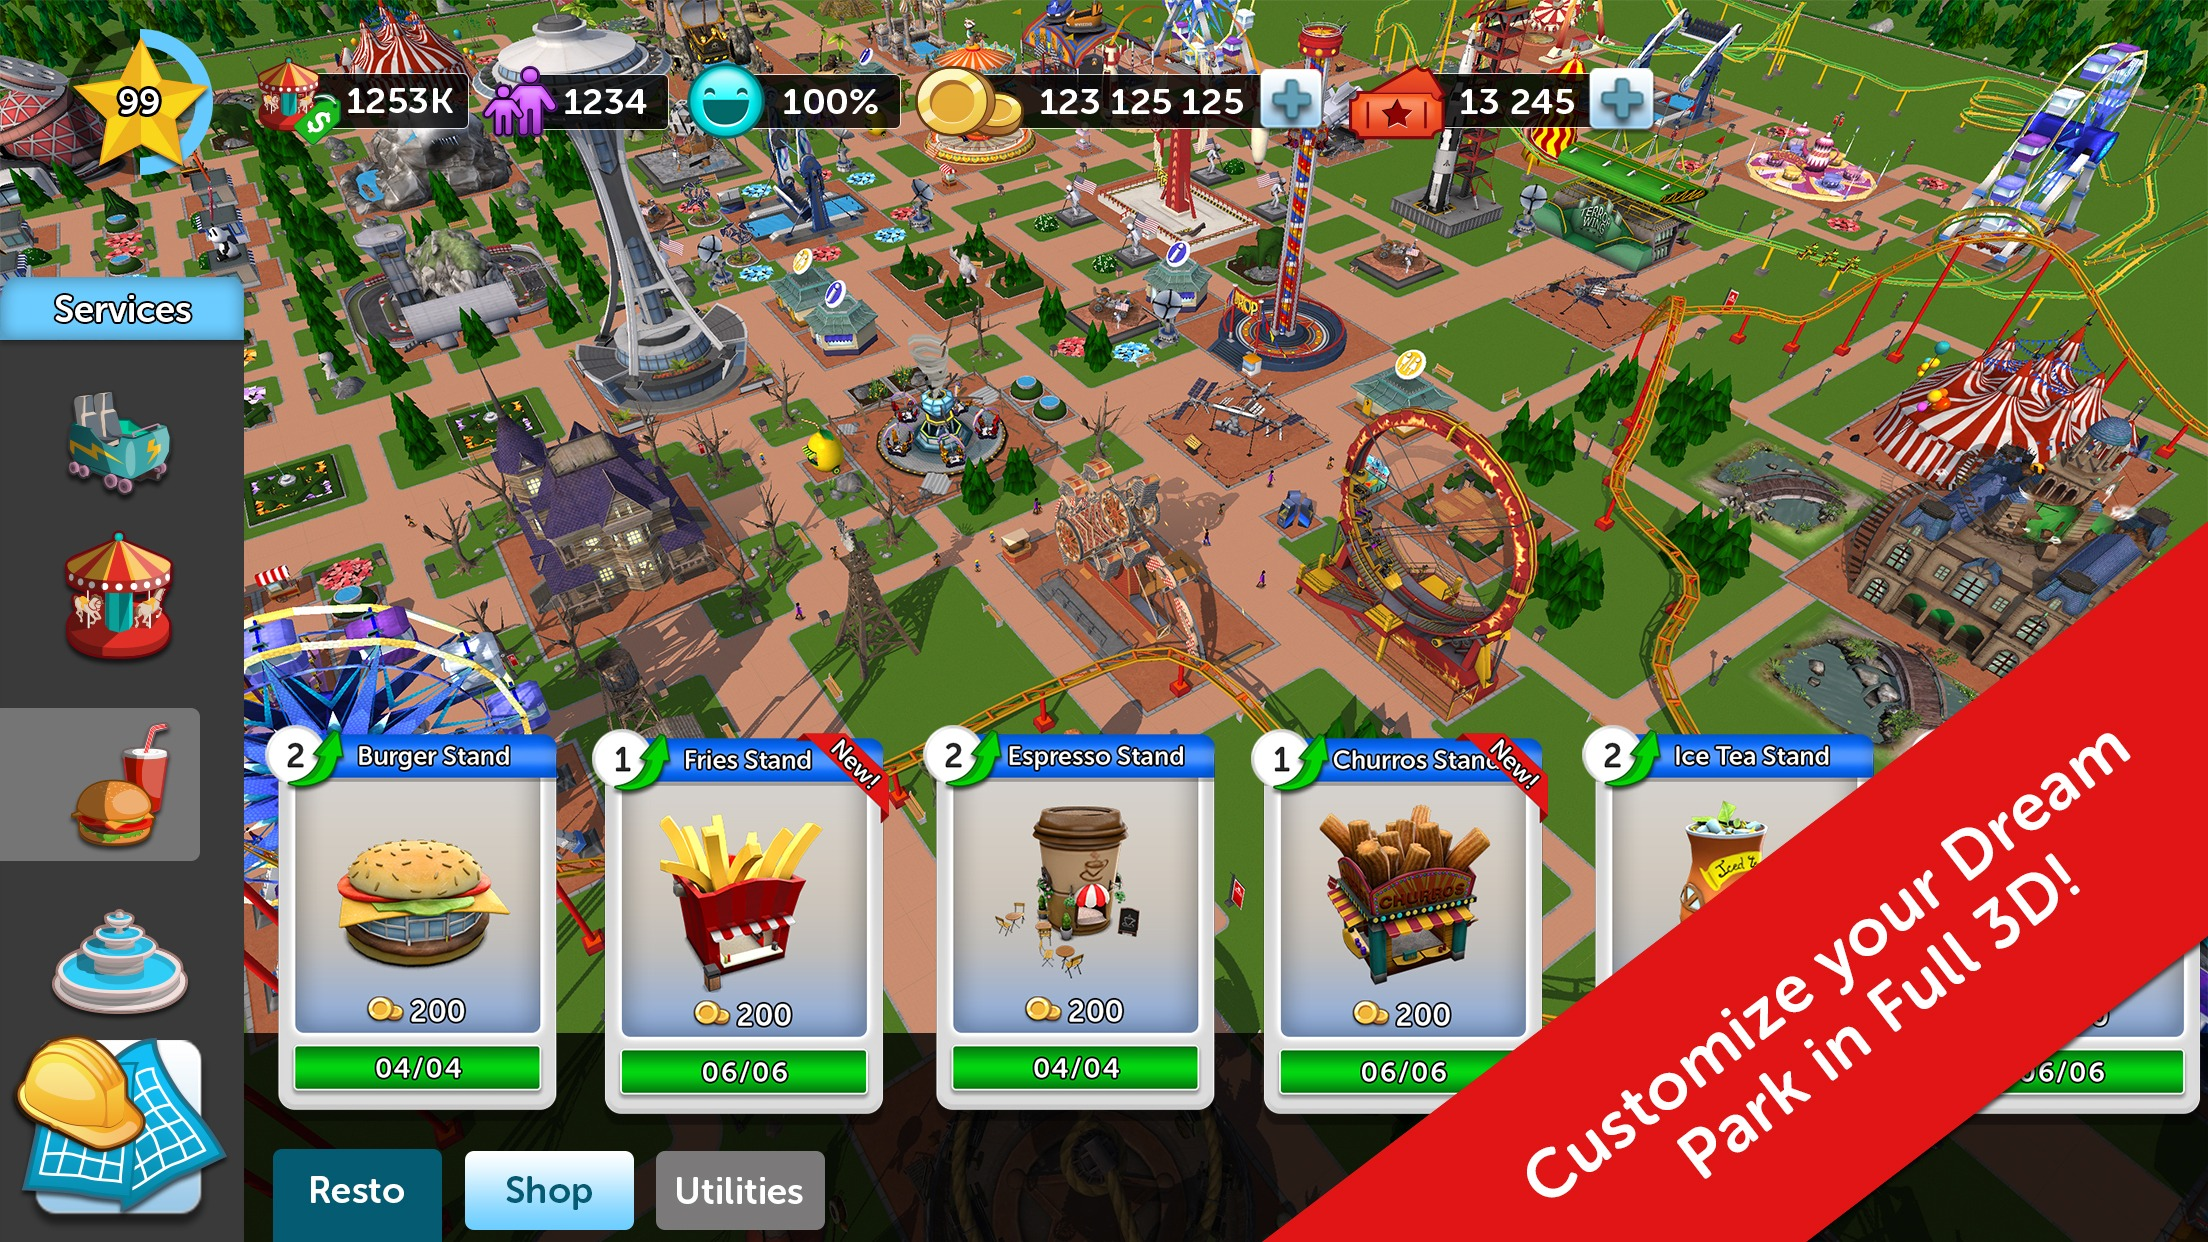 Atari Soft Launches 'RollerCoaster Tycoon Touch' in New